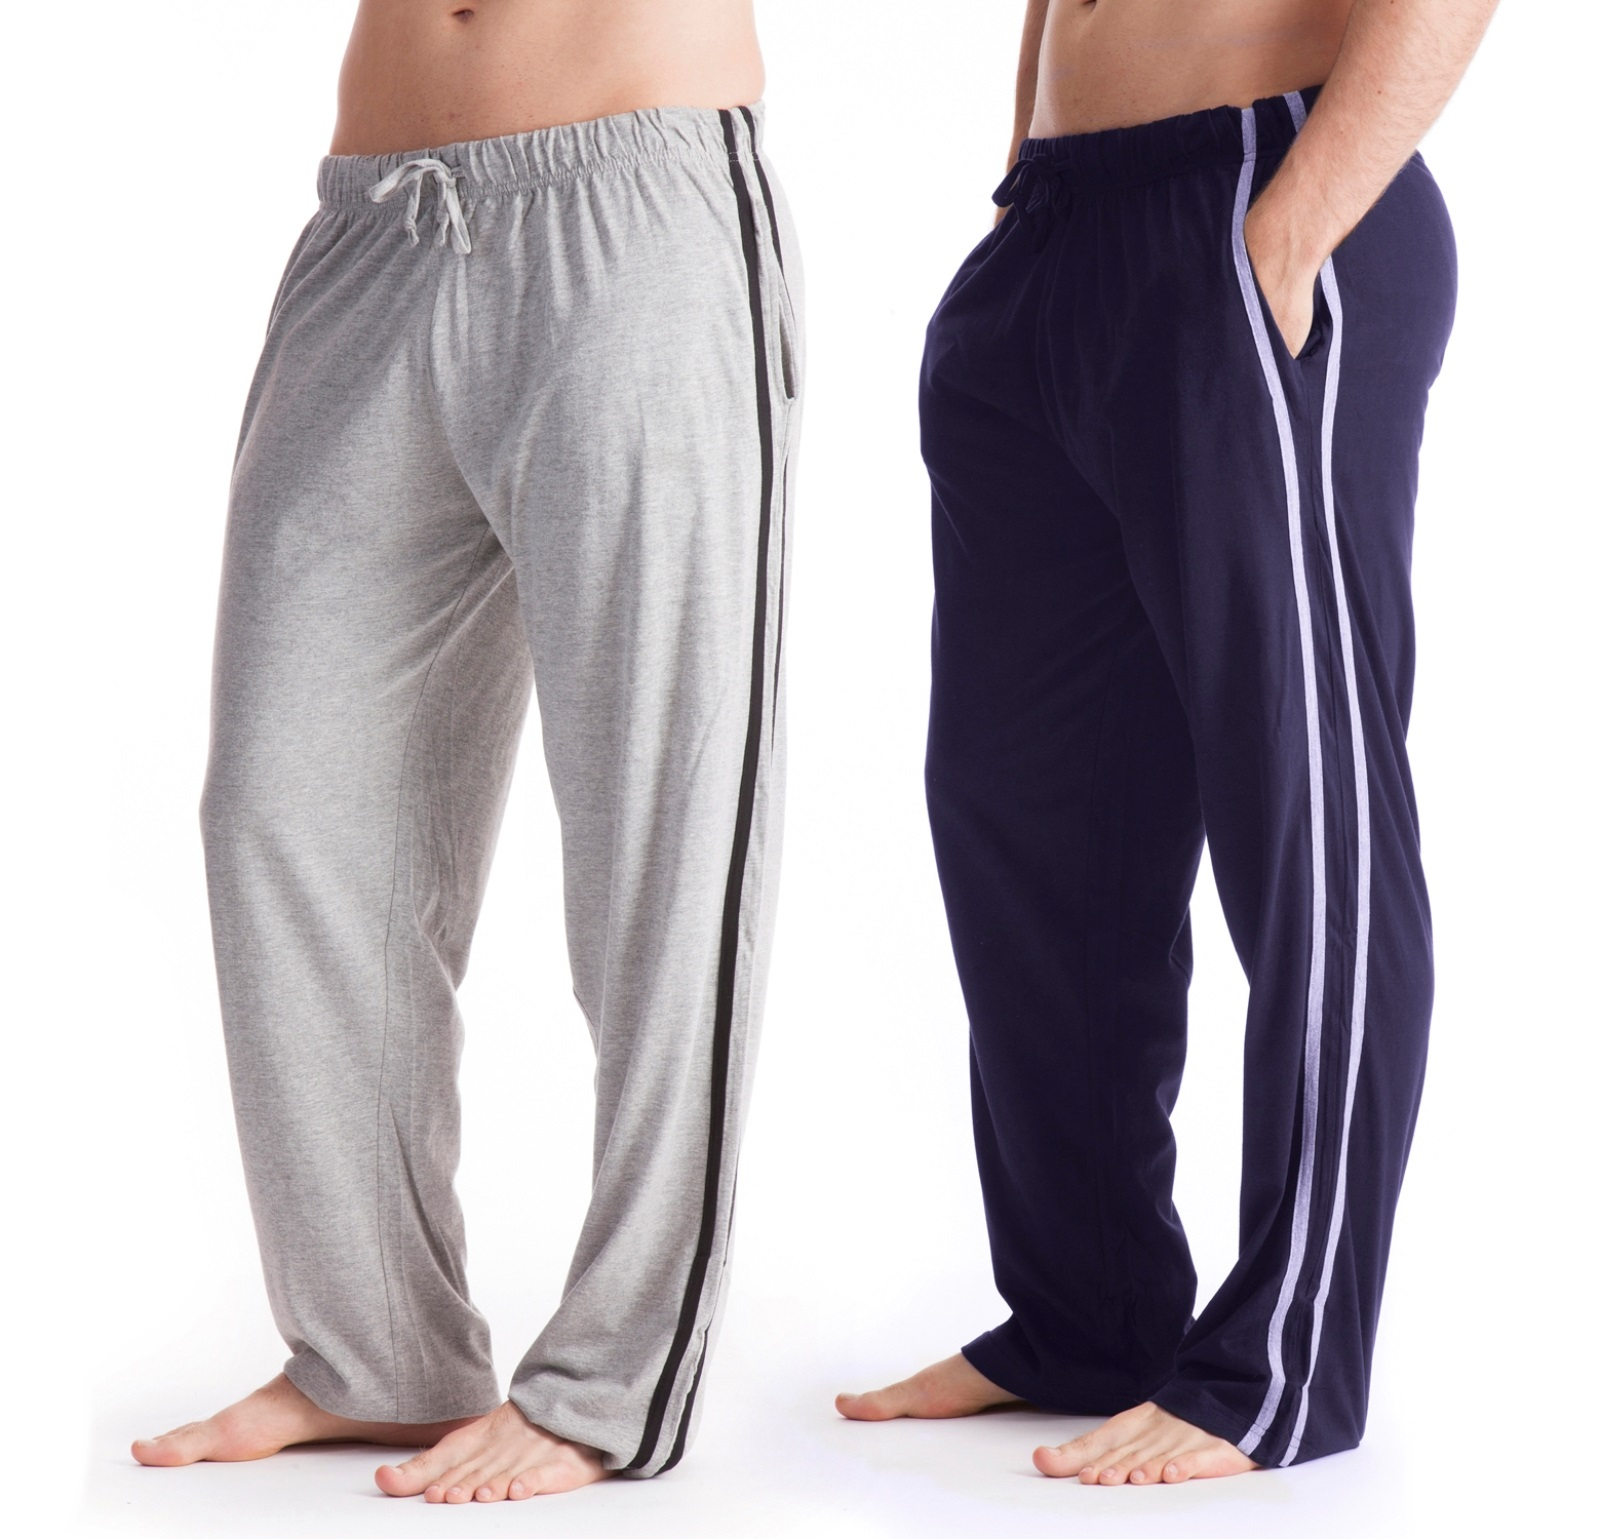 Men's Lounge Pants After a long day at work, all you want is a hot shower and something cozy to wear around the house. Men's lounge pants offer a comfortable yet functional fit.